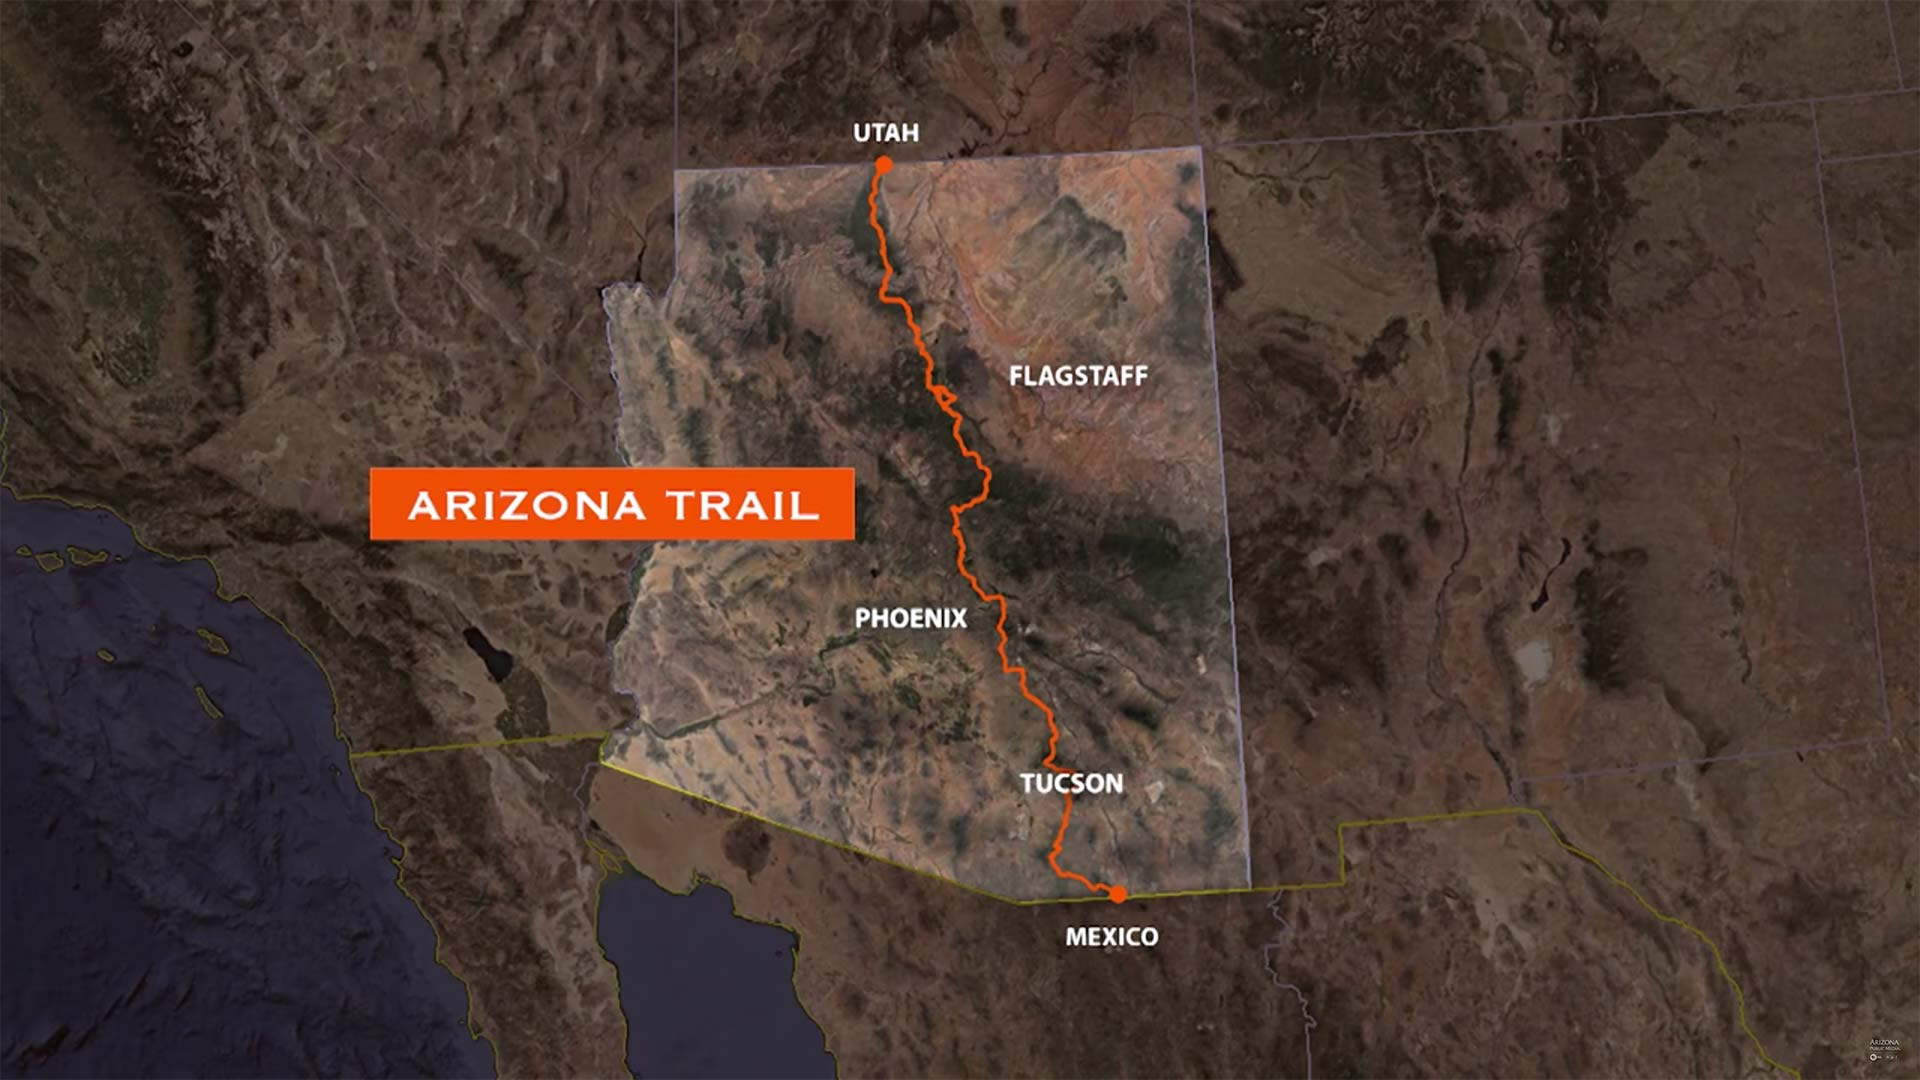 Arizona Trail Map hero